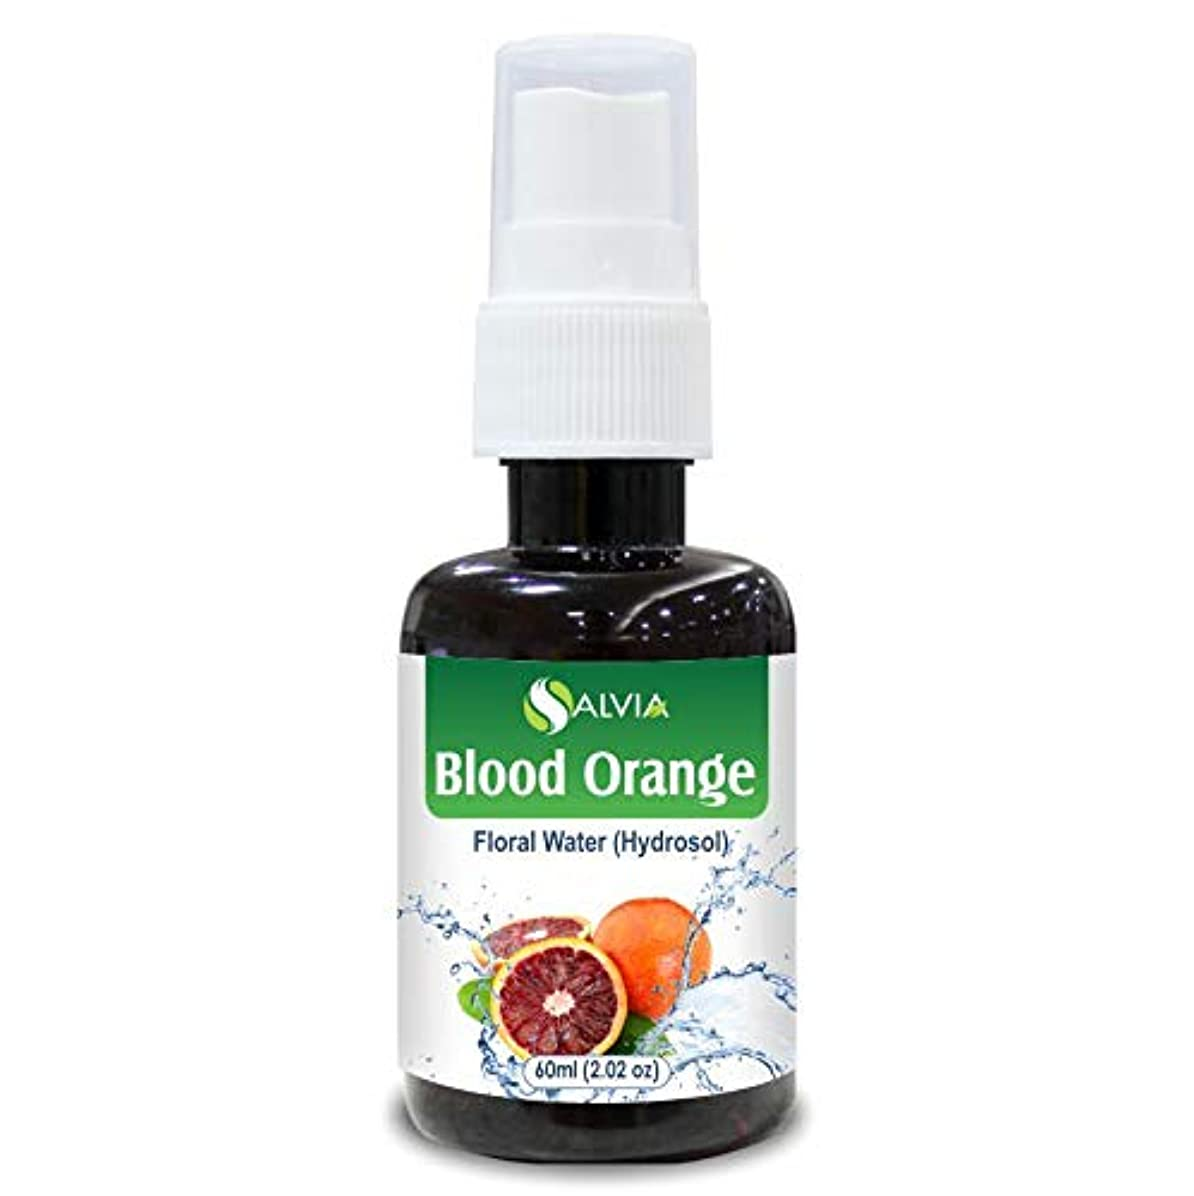 Blood Orange Floral Water 60ml (Hydrosol) 100% Pure And Natural